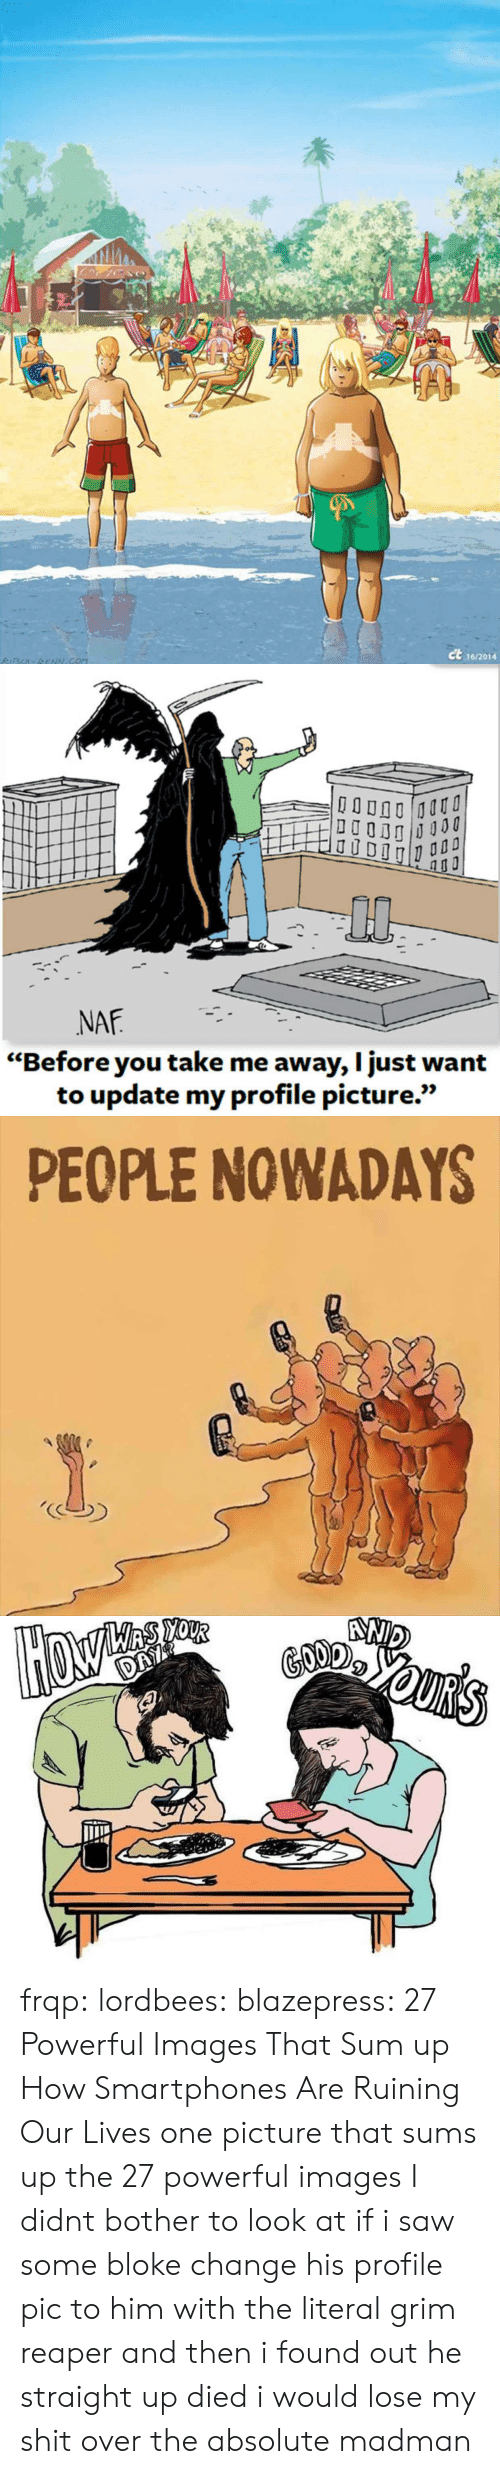 """smartphones: ct  16/2014   0p  NAF  """"Before you take me away, I just want  to update my profile picture.""""  เเว   PEOPLE NOWADAYS frqp:  lordbees:  blazepress:  27 Powerful Images That Sum up How Smartphones Are Ruining Our Lives   one picture that sums up the 27 powerful images I didnt bother to look at   if i saw some bloke change his profile pic to him with the literal grim reaper and then i found out he straight up died i would lose my shit over the absolute madman"""